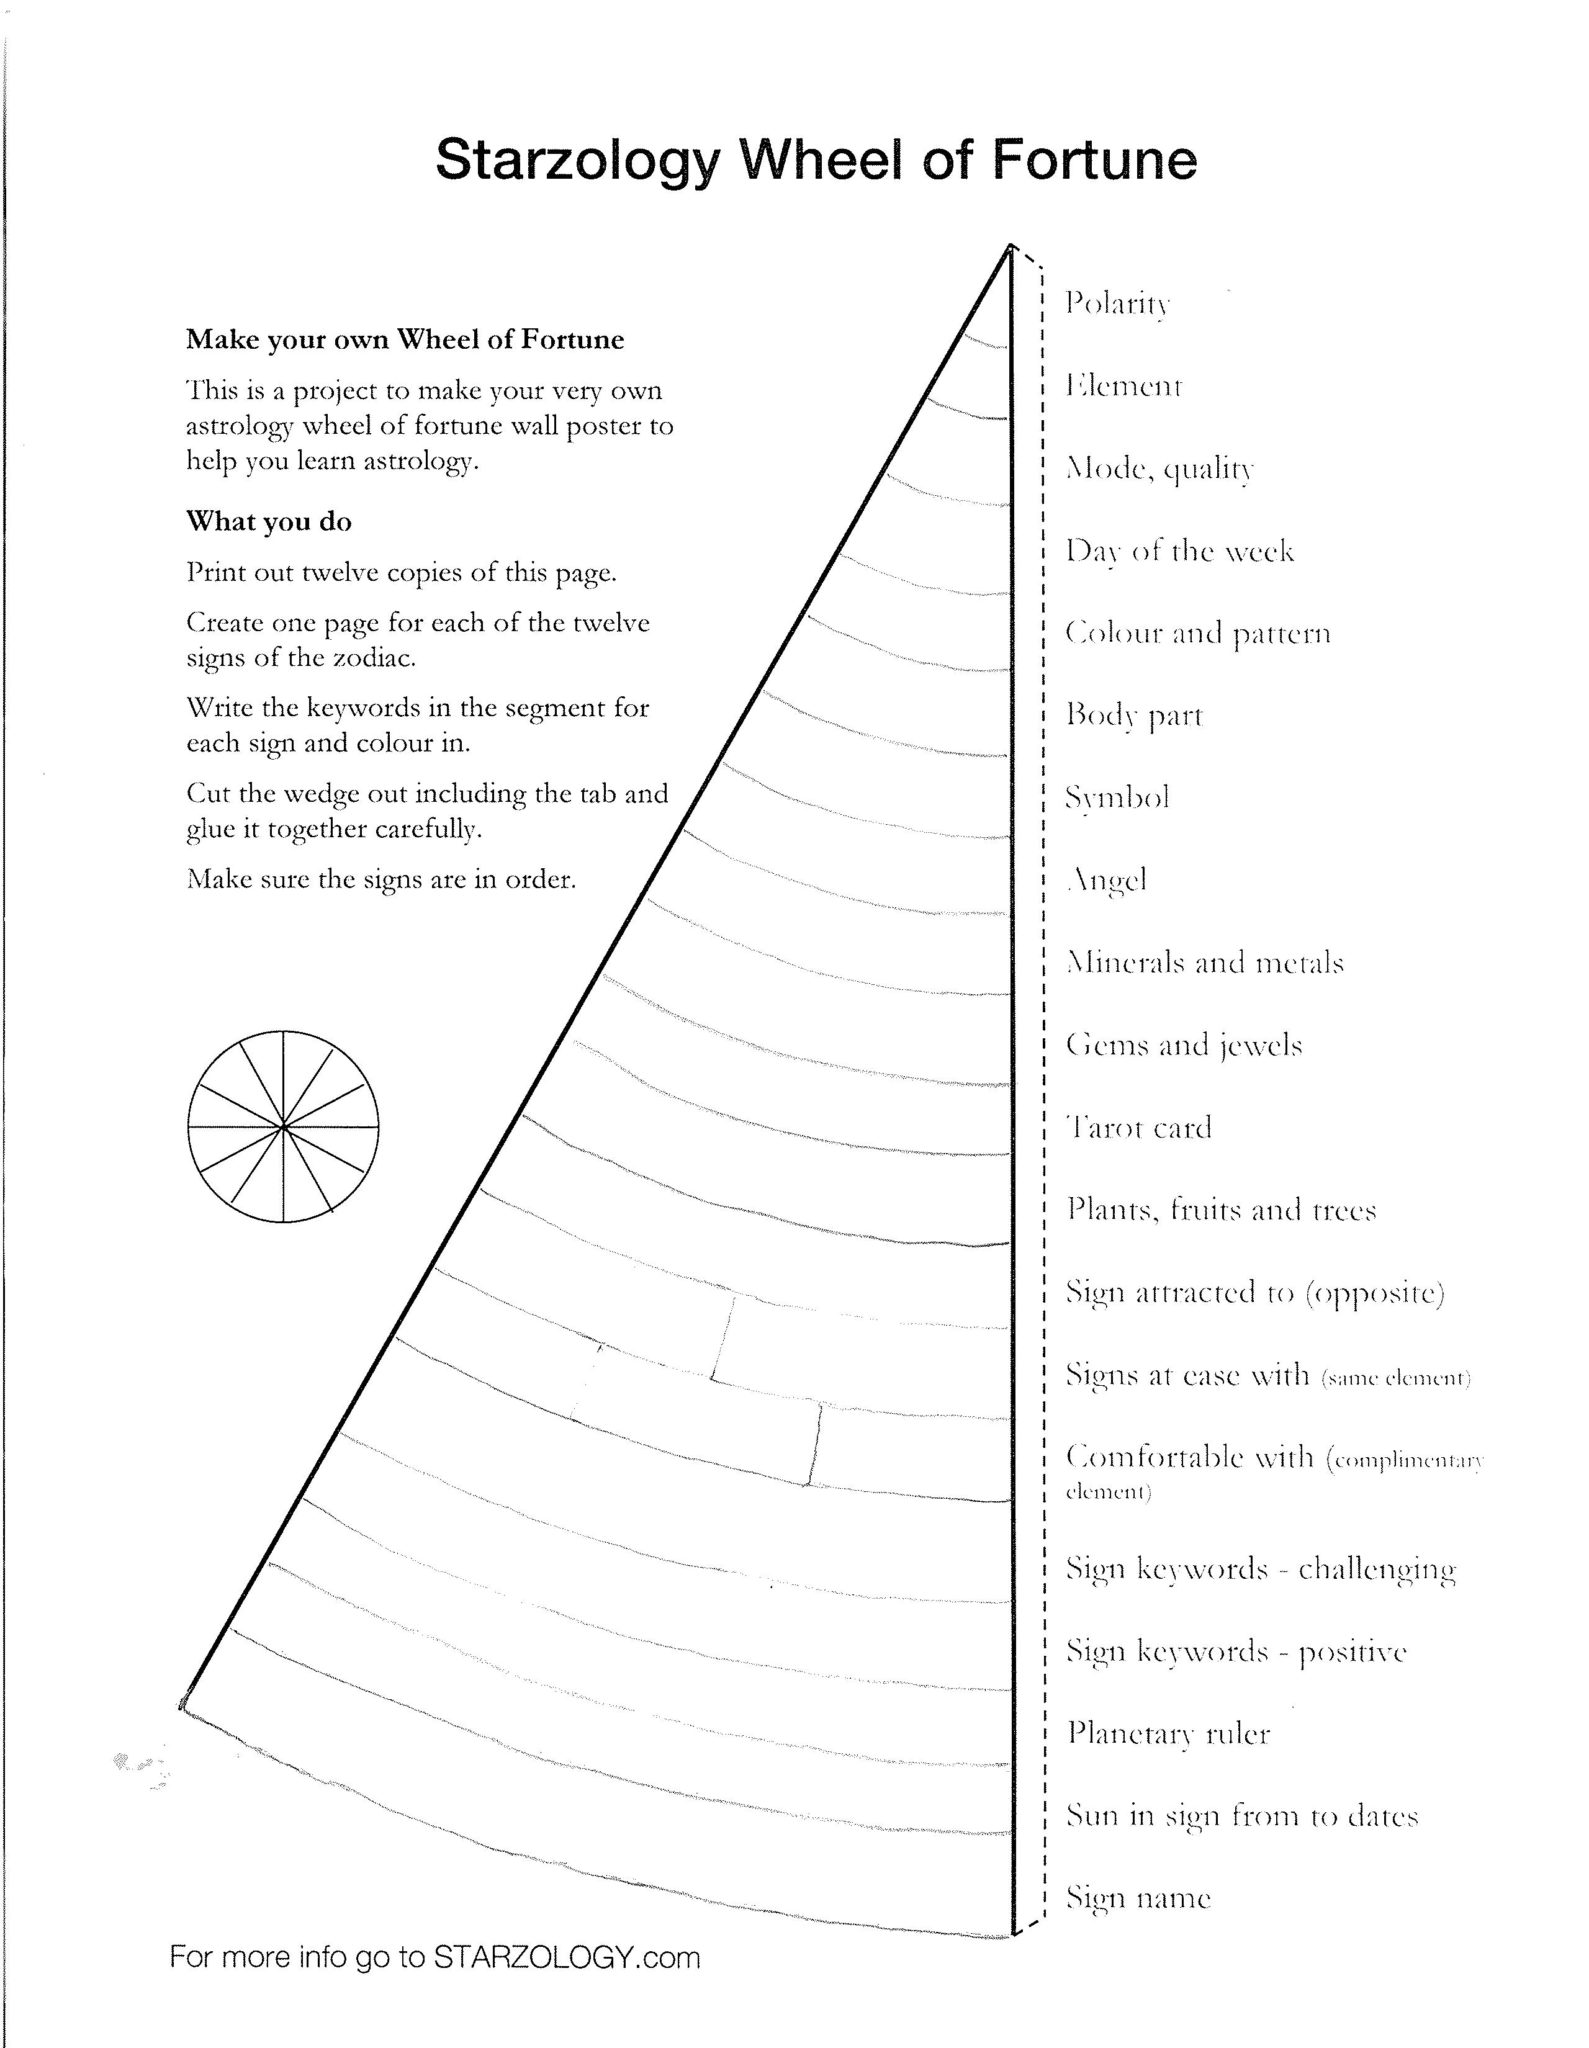 Starzology Wheel Of Fortune Page 001